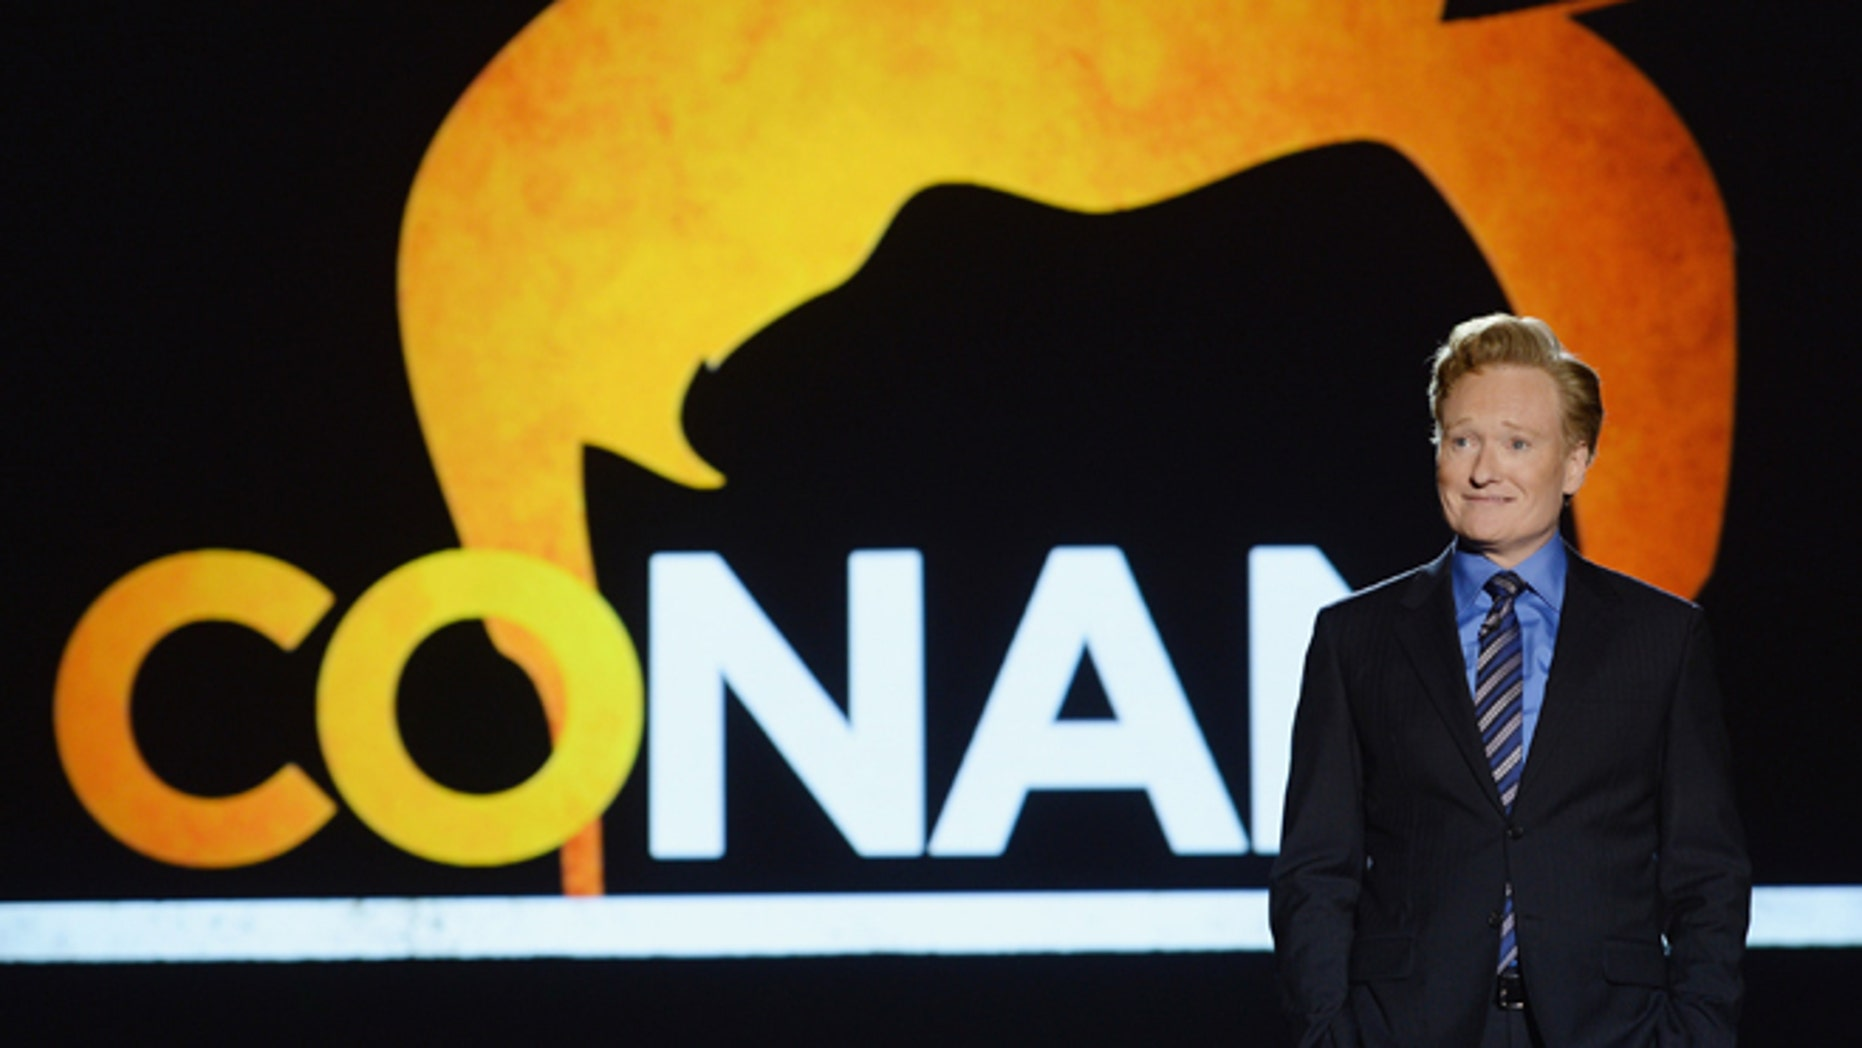 NEW YORK, NY - MAY 14: Conan O'Brien speaks onstage at the TBS / TNT Upfront 2014 at The Theater at Madison Square Garden on May 14, 2014 in New York City.  24674_002_1225.JPG  (Photo by Dimitrios Kambouris/Getty Images for Turner)